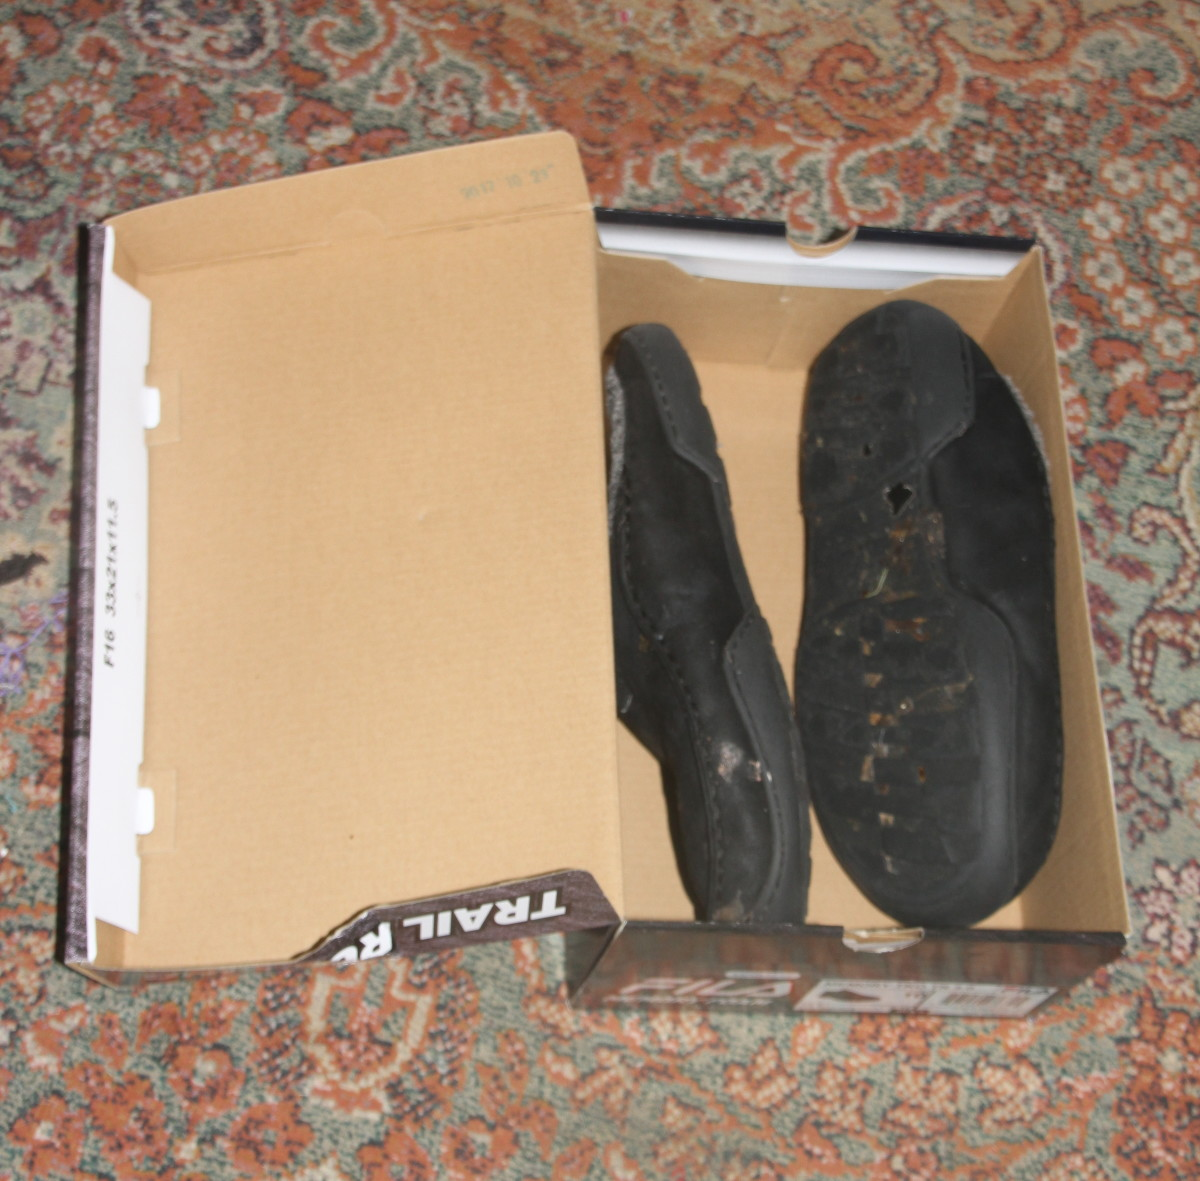 Shoe boxes are useful for organizing shoes and small clothing items.